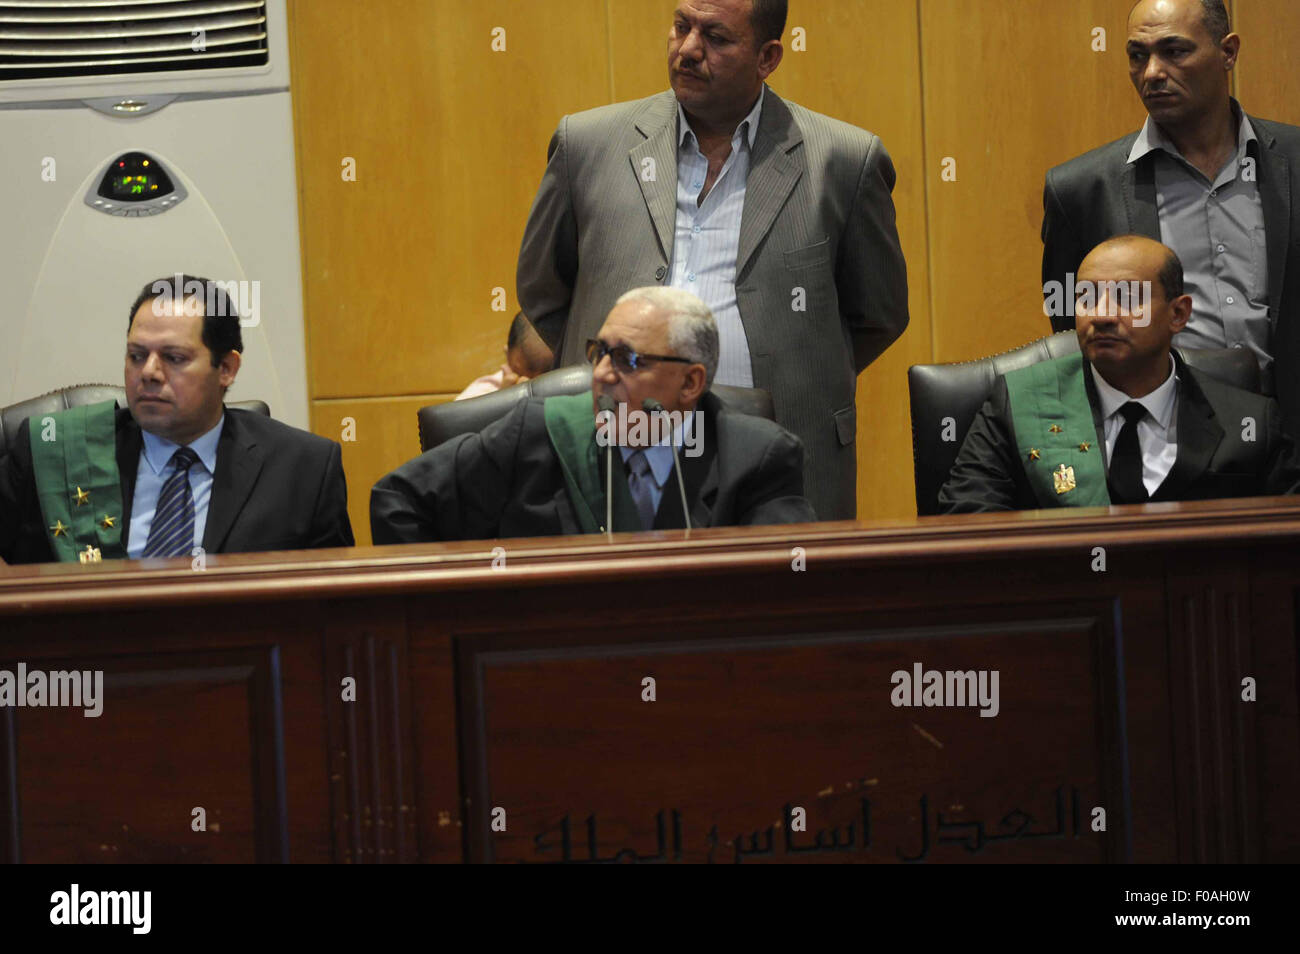 Cairo, Egypt. 11th Aug, 2015. The Judge attend the trial of Egyptian defendants over a 2012 stadium riot in the Stock Photo